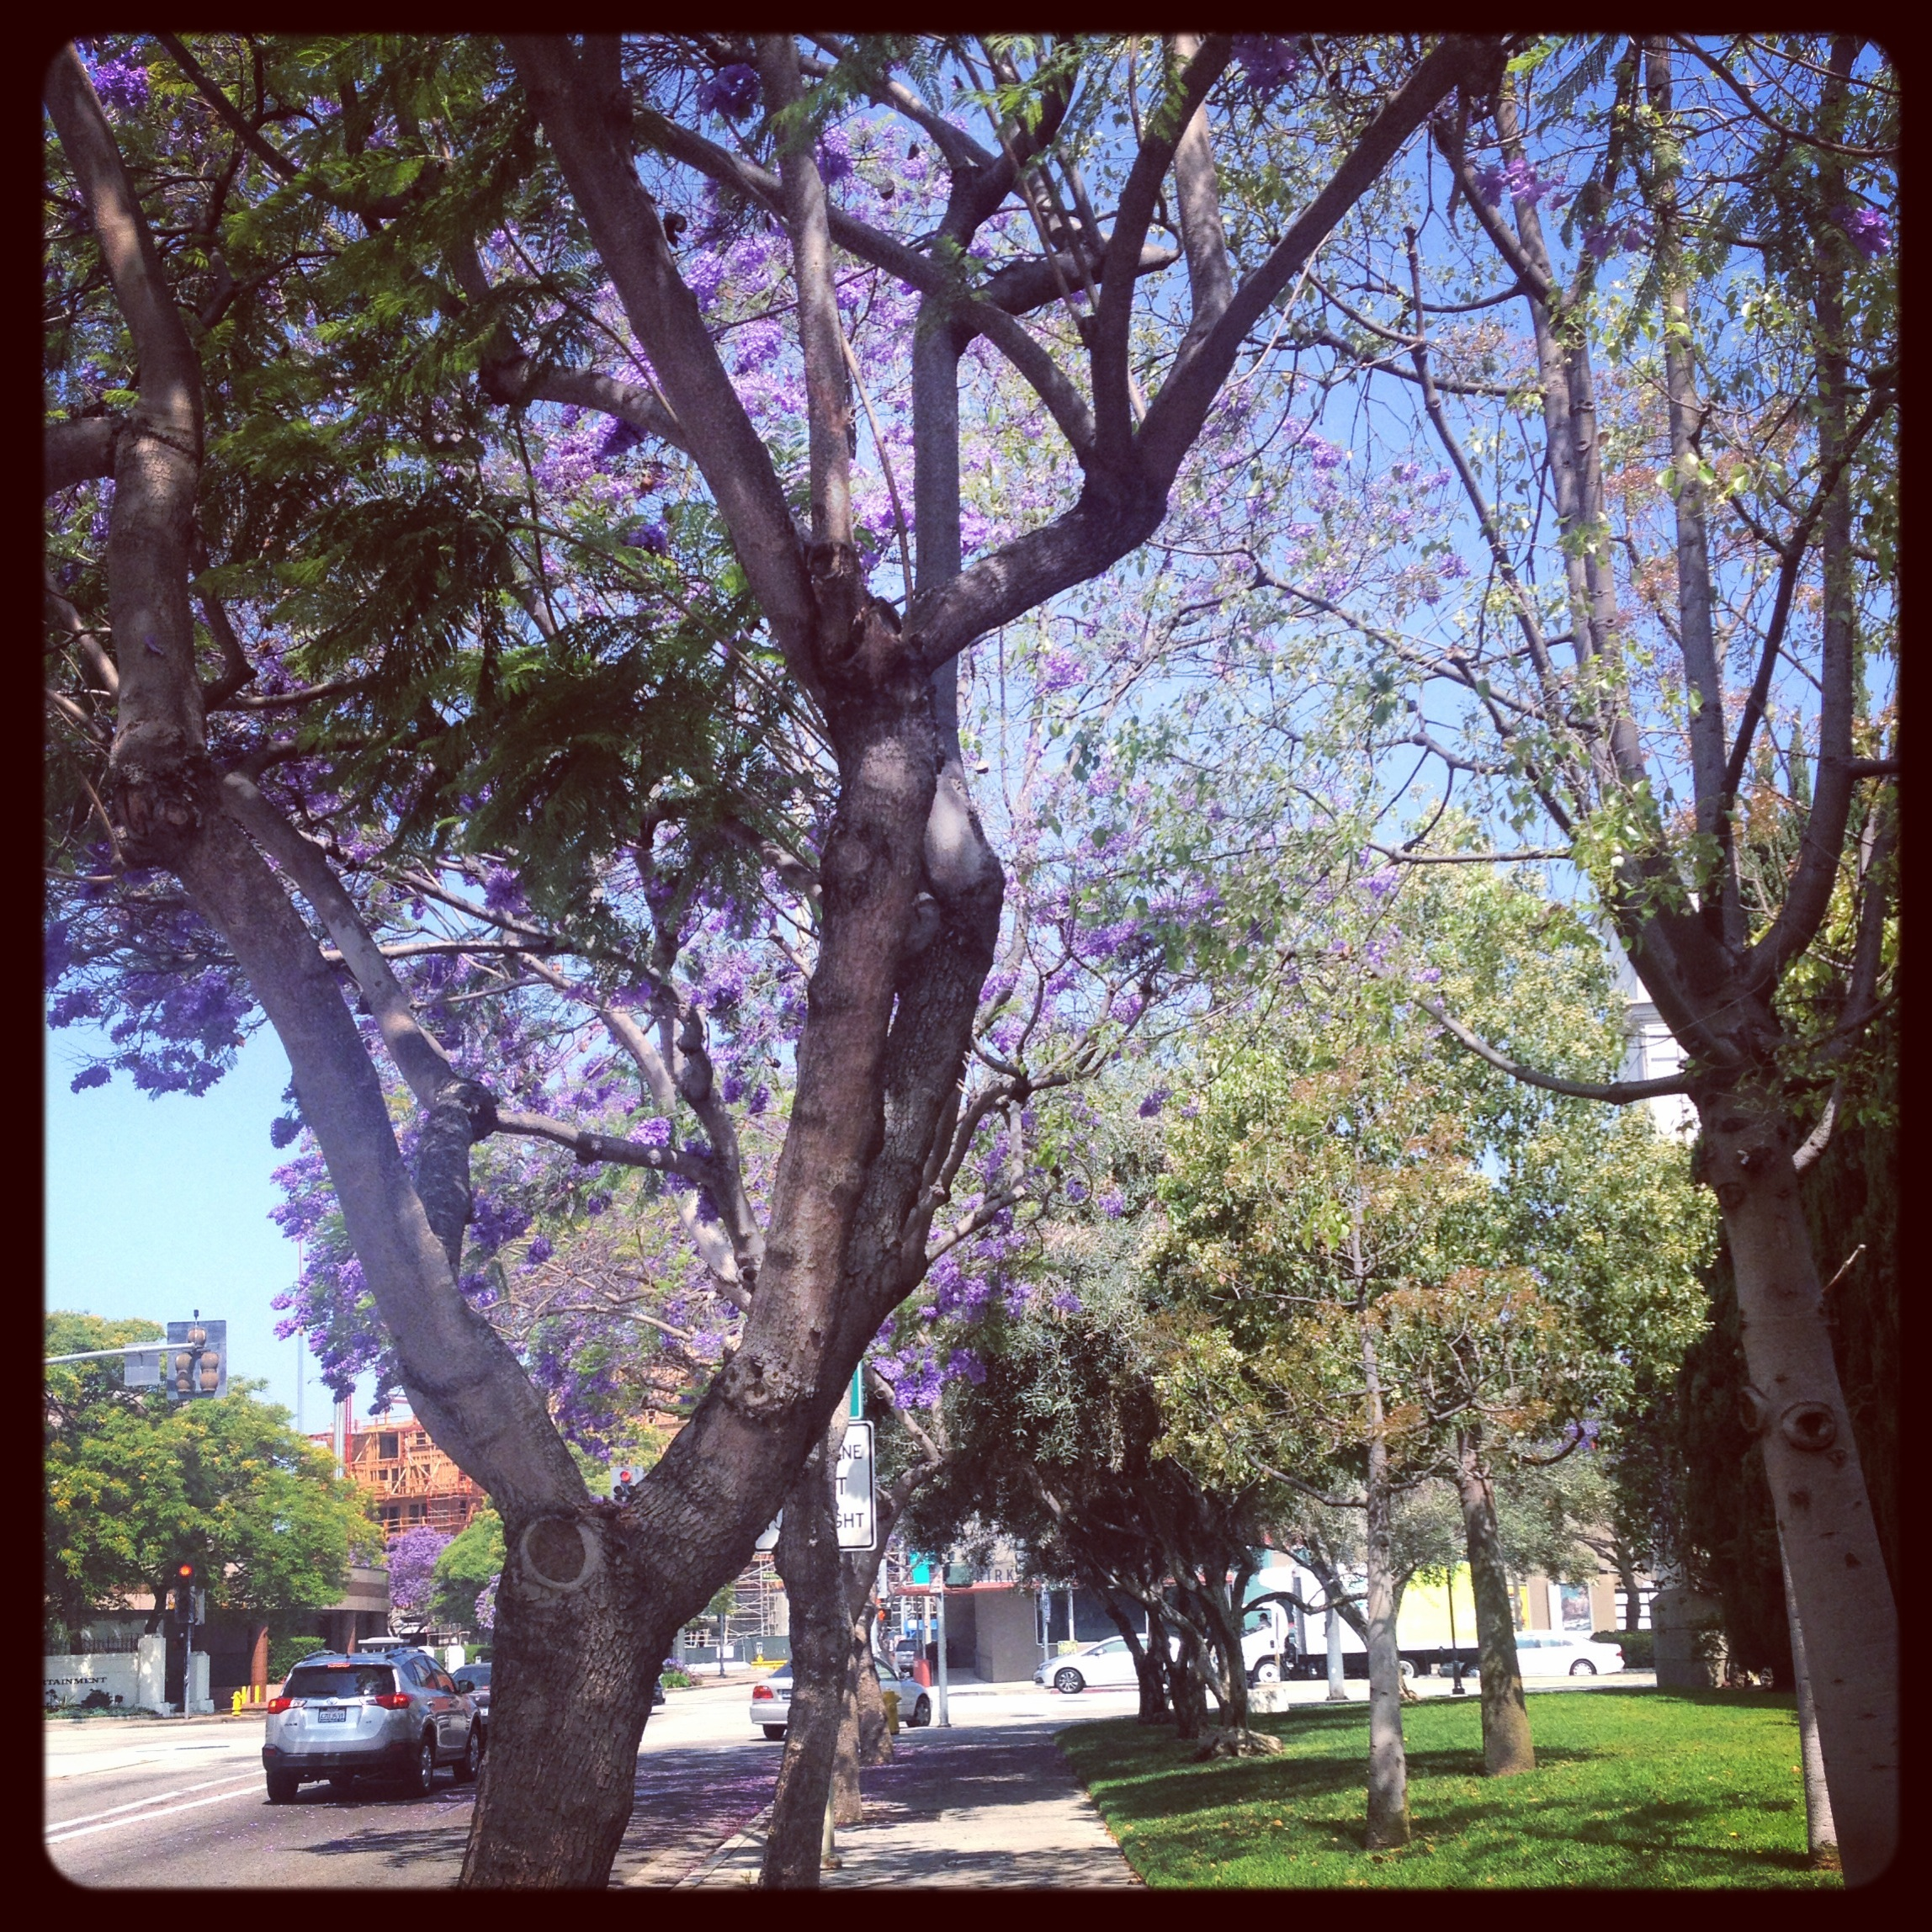 Gorgeous trees with fabulously vibrant, purple blossoms are everywhere down here: Jacarandas.